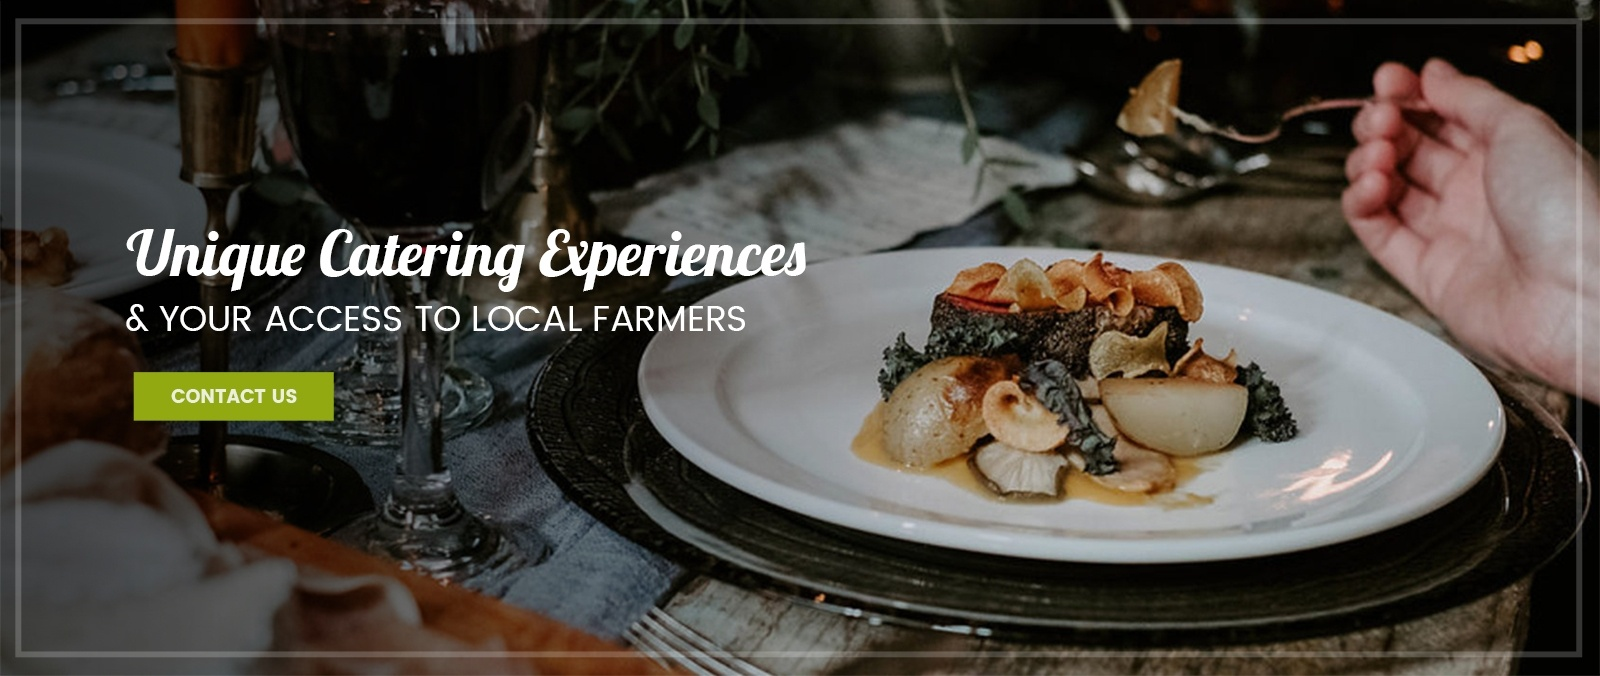 Event Caterers in St. Catharines